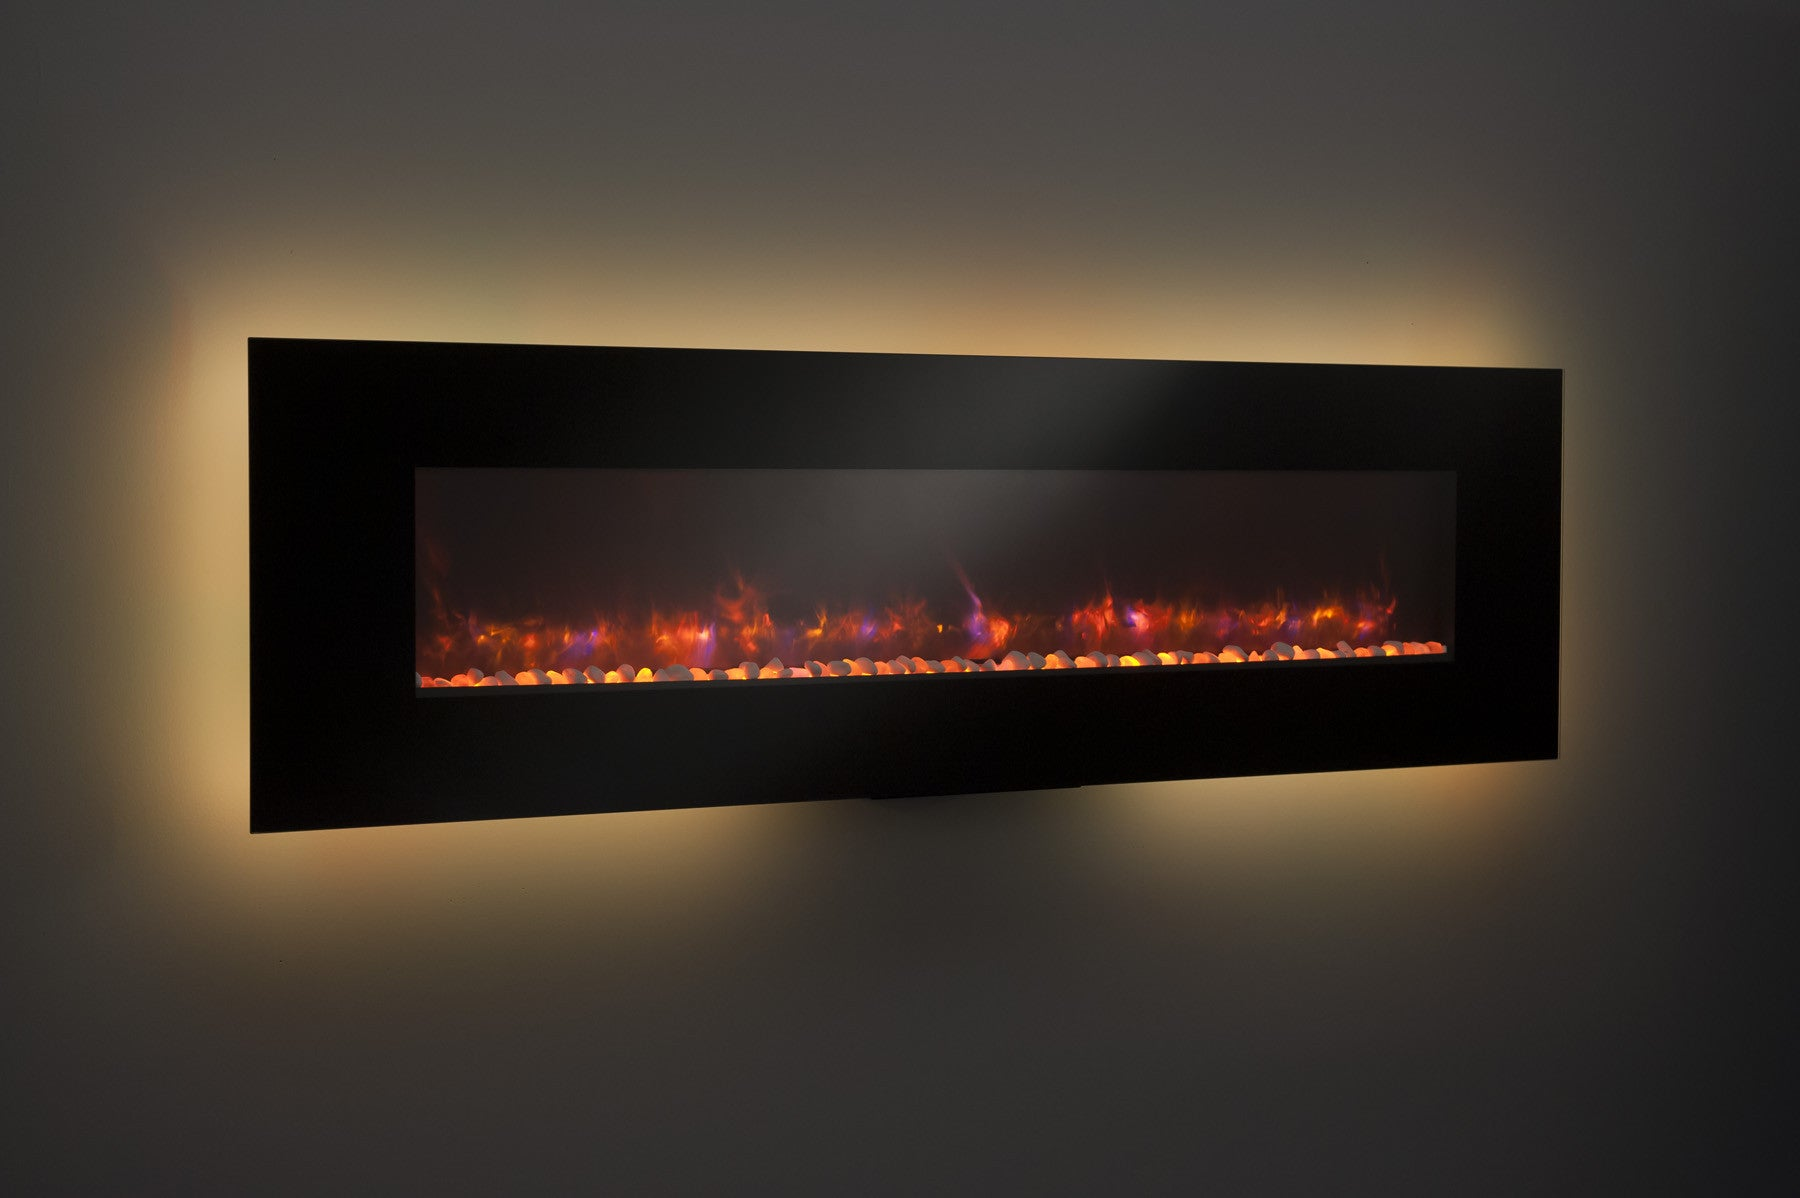 Natural gas wall mount fireplaces - 94 Inch Black Linear Electric Wall Fireplace